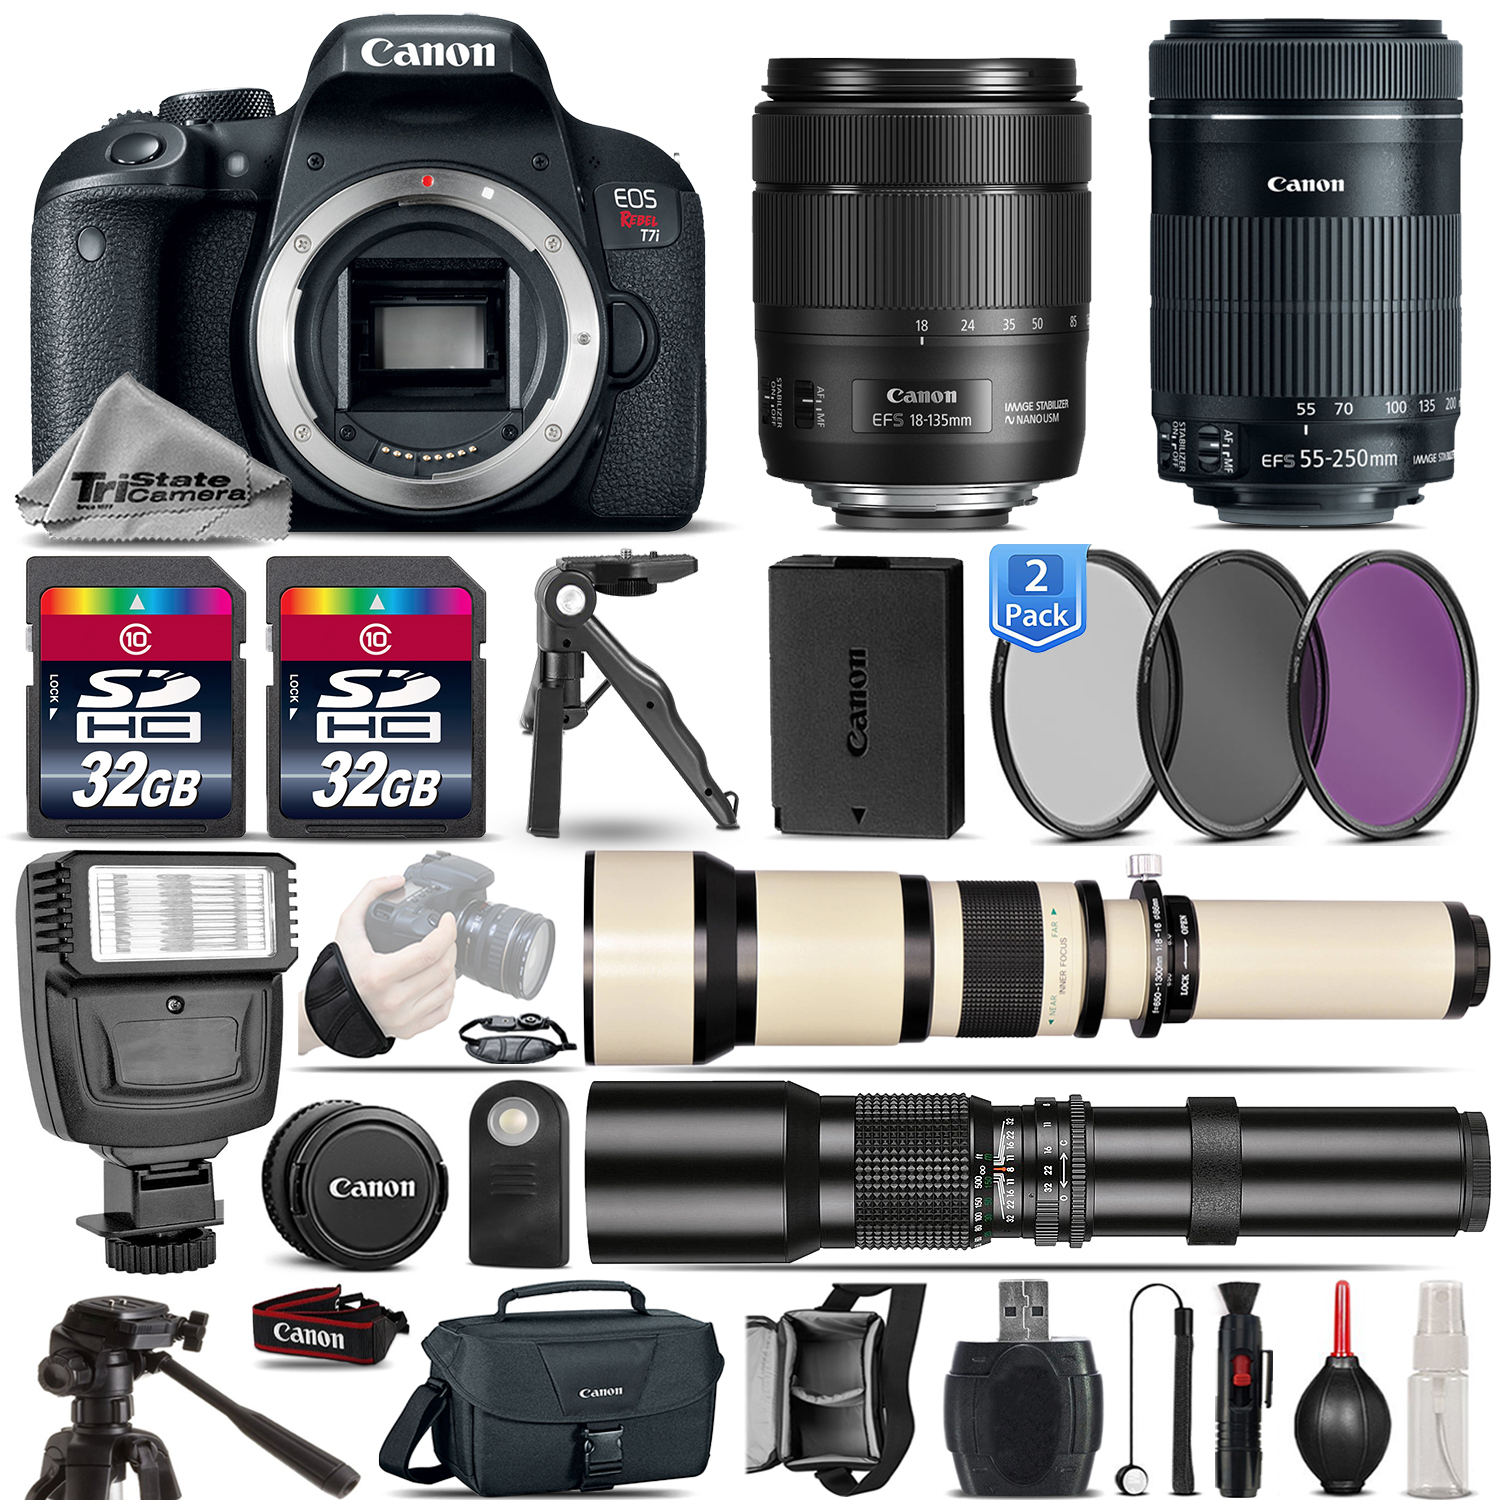 EOS Rebel T7i DSLR Camera + 18-135mm IS USM + 55-250mm USM Lens - 64GB Kit *FREE SHIPPING*